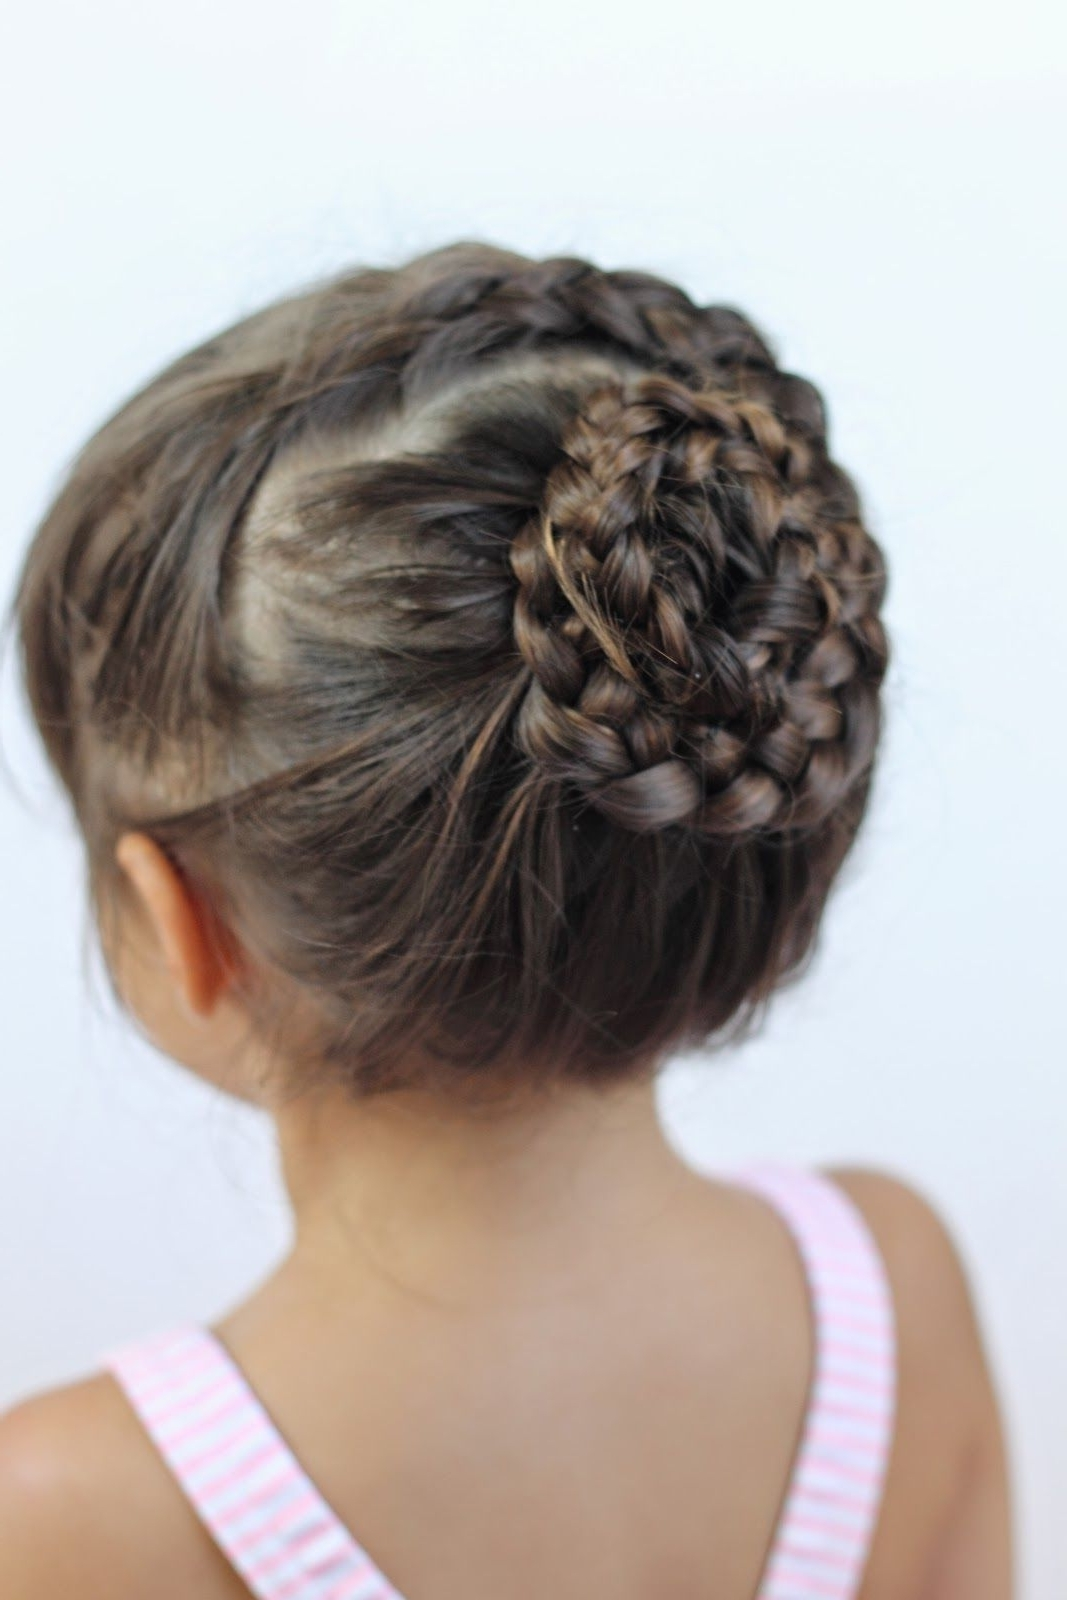 16 Toddler Hair Styles To Mix Up The Pony Tail And Simple Braids With Regard To Best And Newest Dutch Inspired Pony Hairstyles (View 3 of 20)